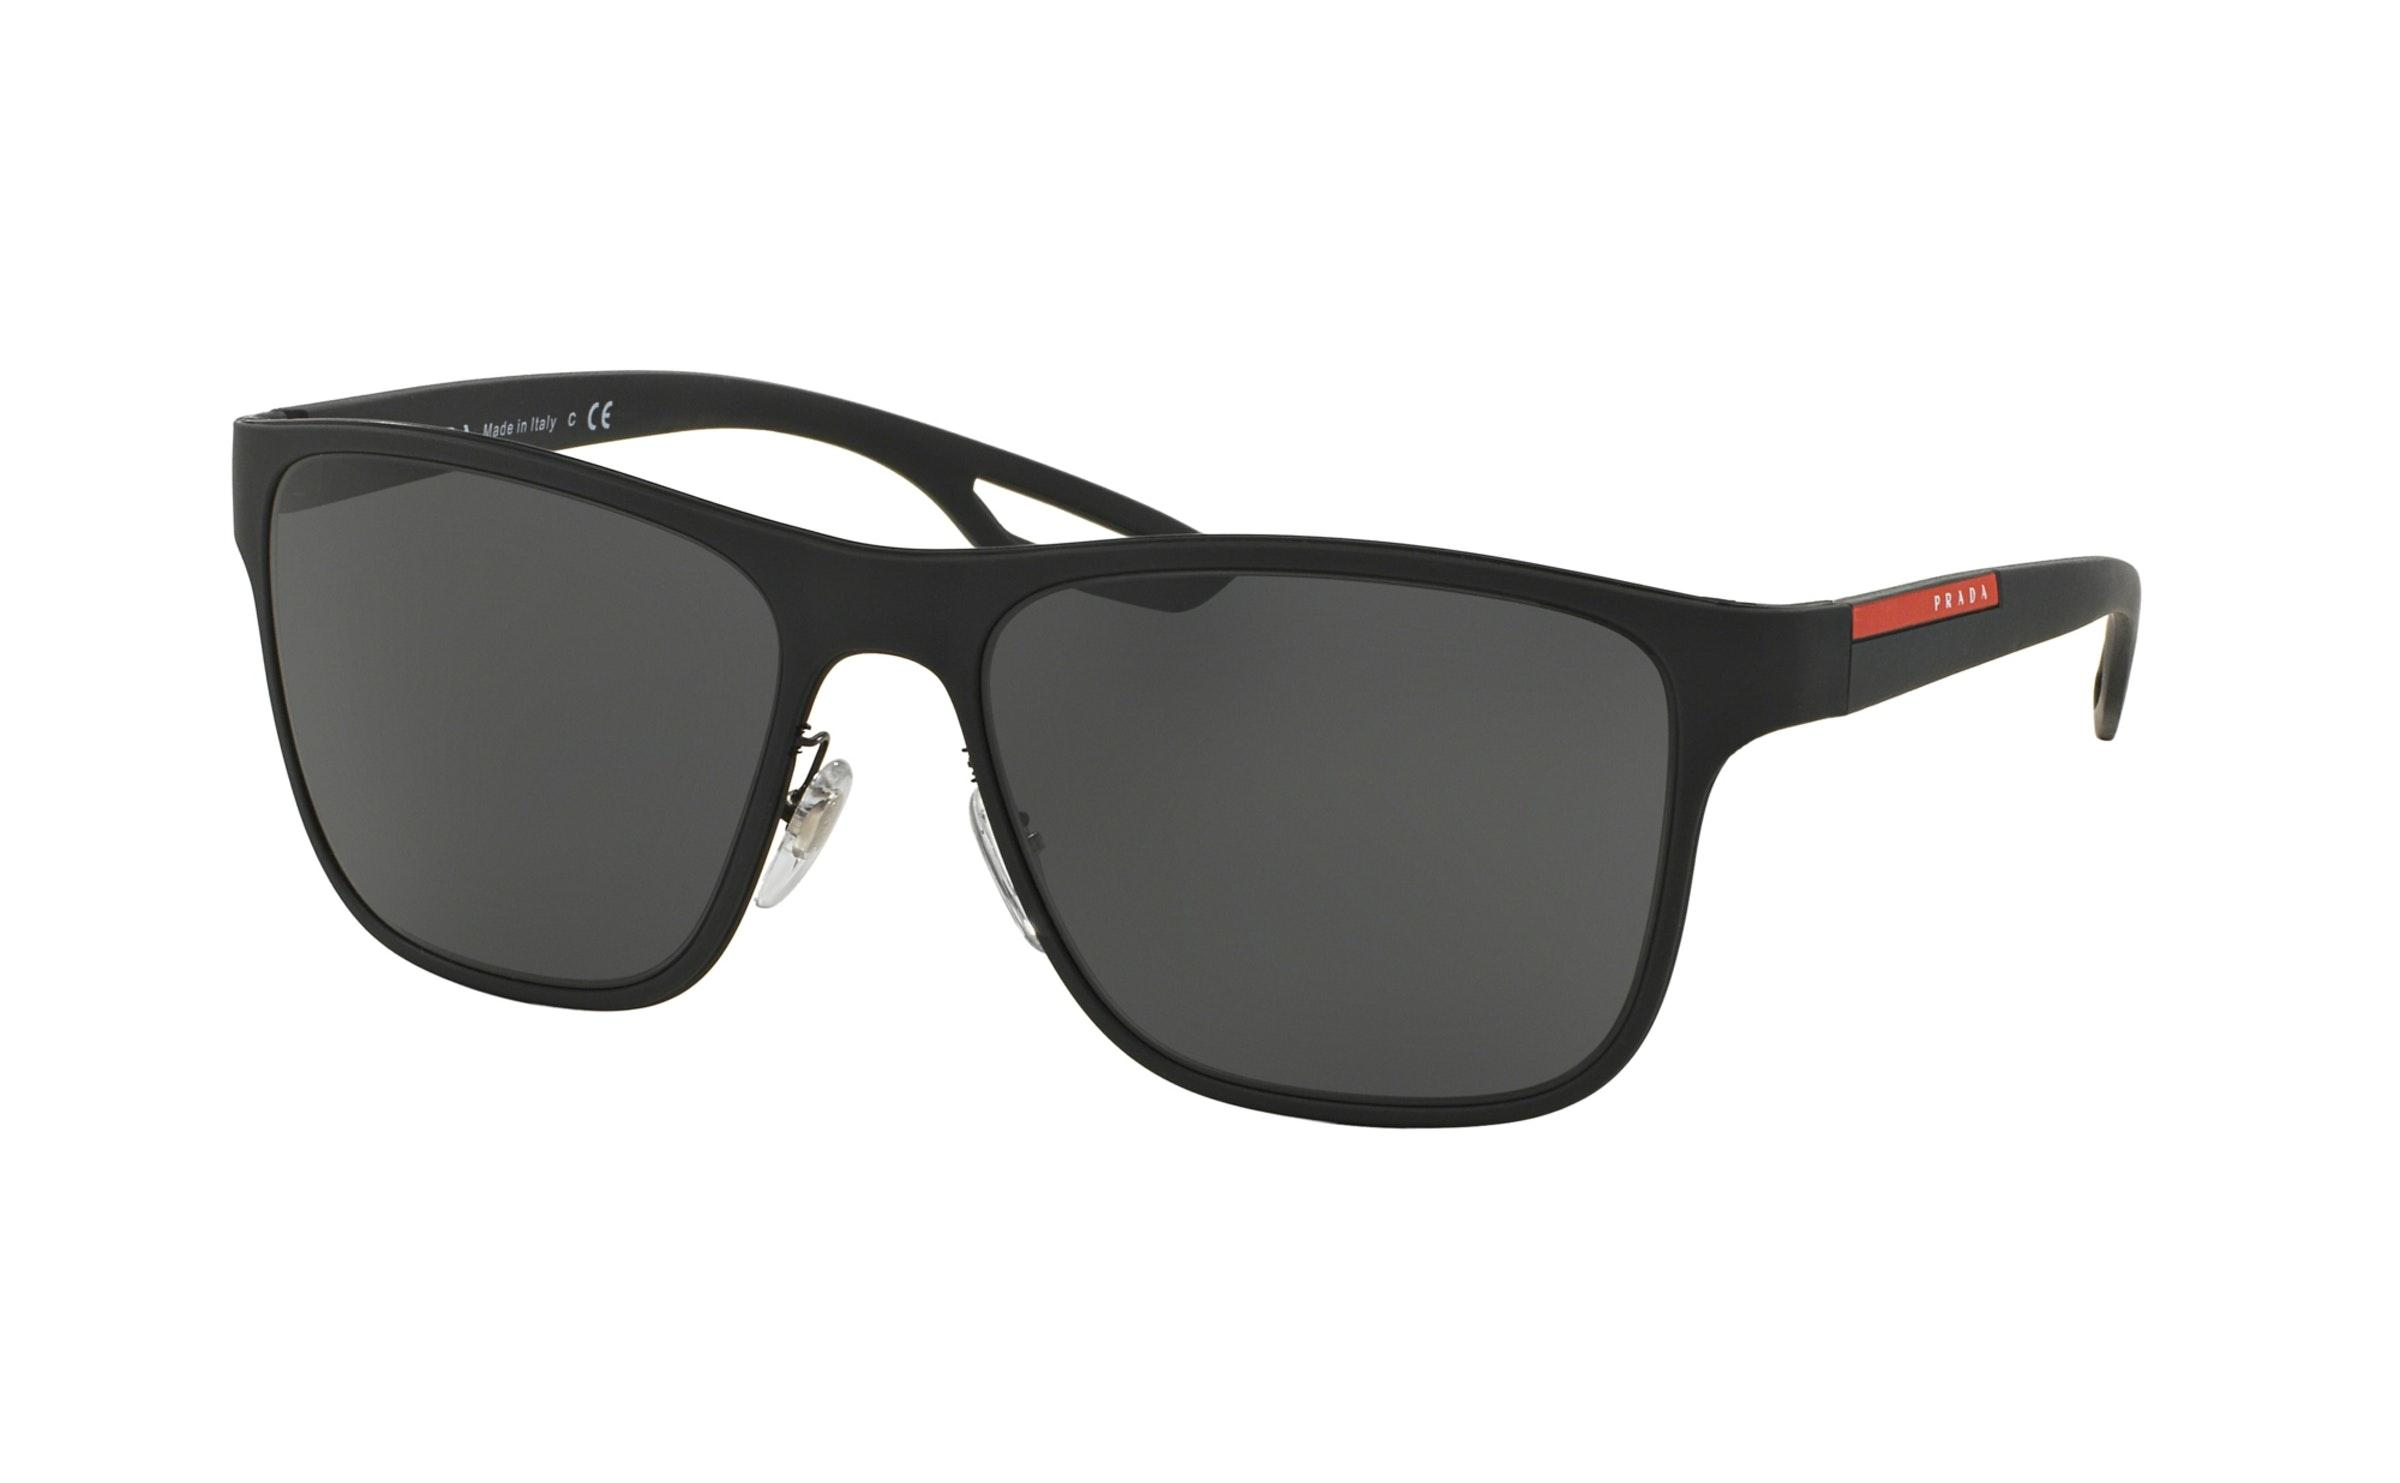 5a95015eb439 Lyst - Prada 56qs Wayfarer Sunglasses in Black